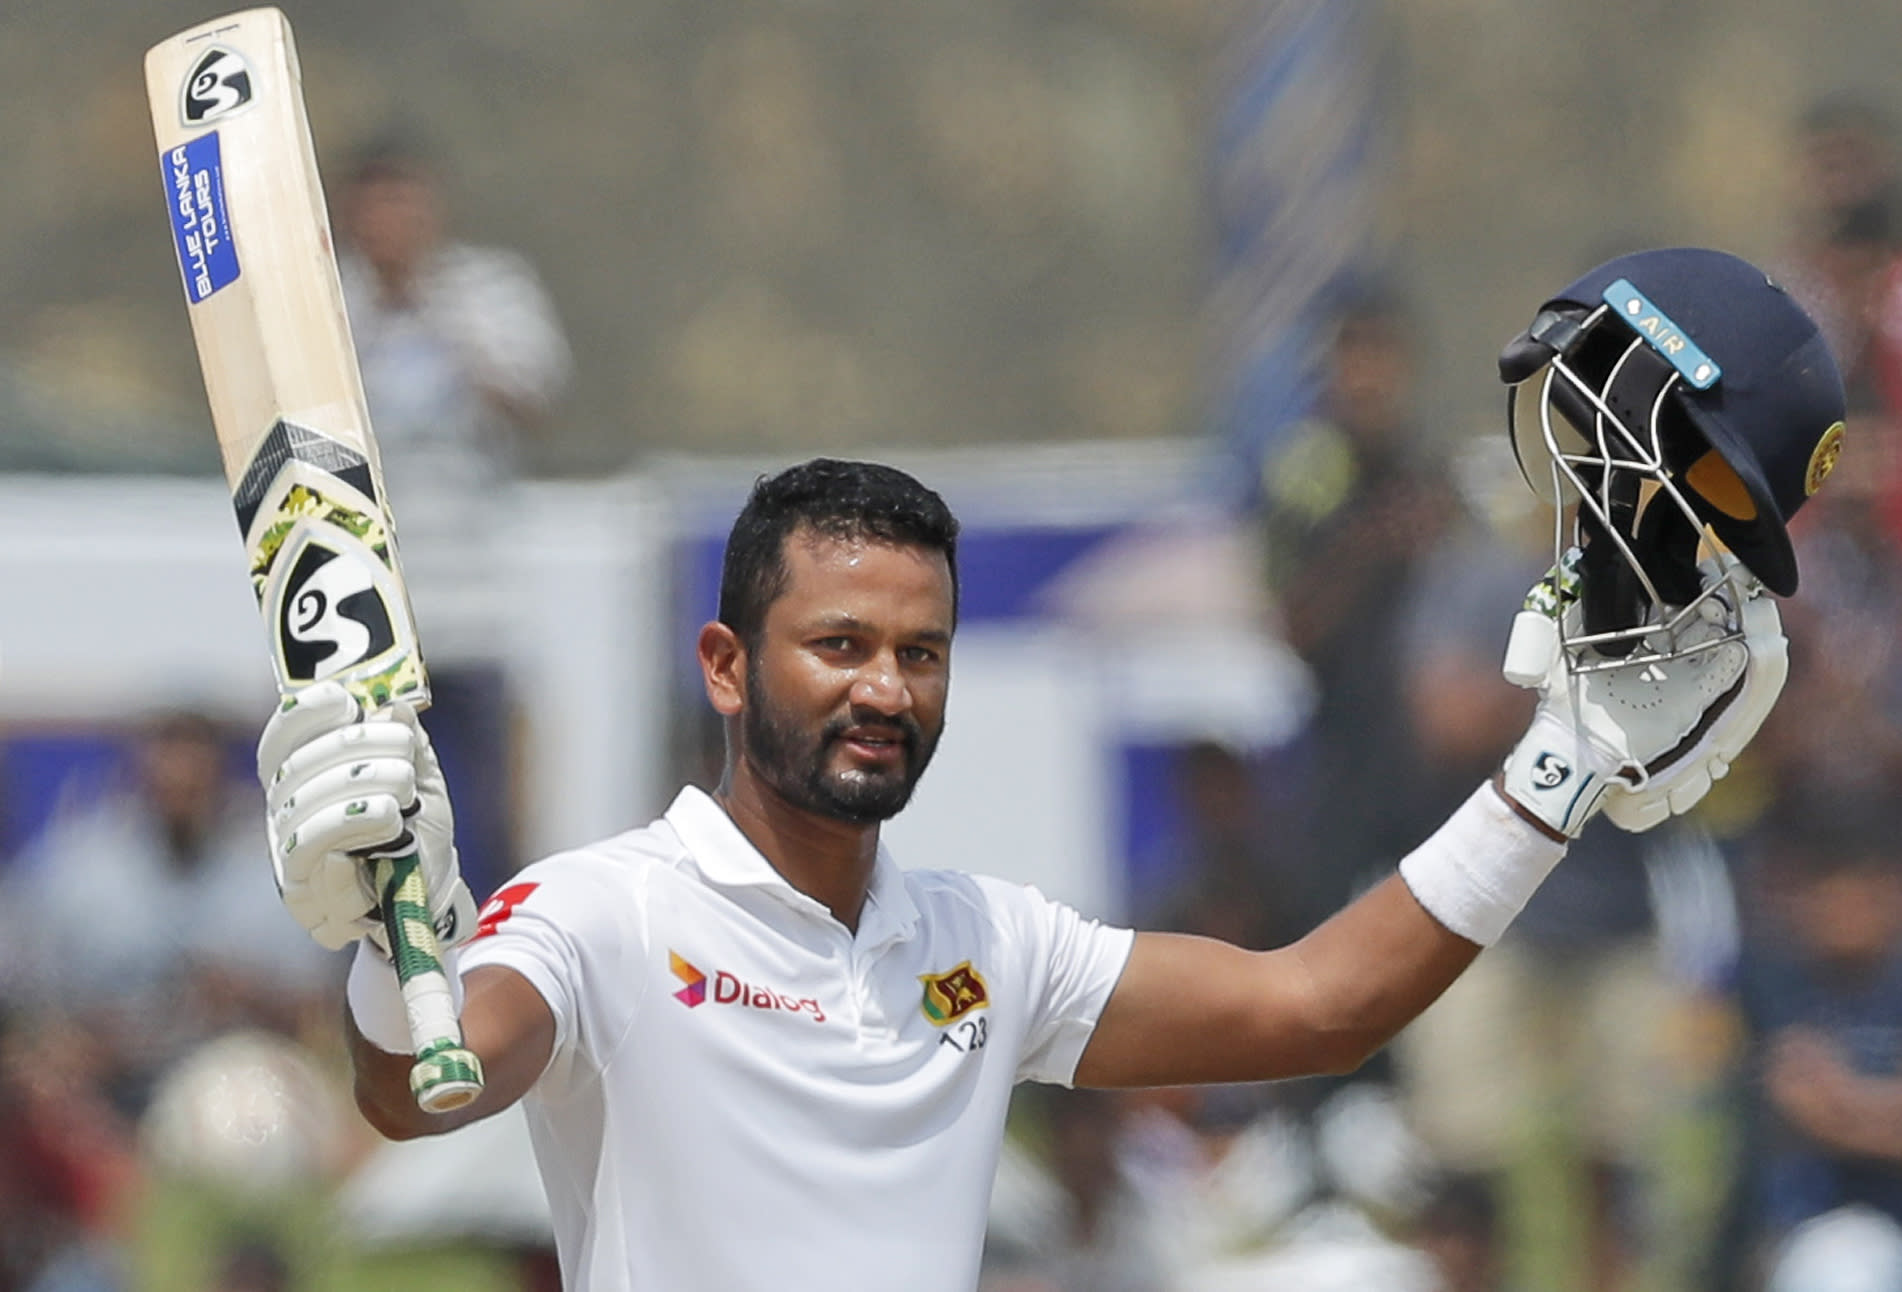 Sri Lankan's Dimuth Karunaratne celebrates scoring a century during the day five of the first test cricket match between Sri Lanka and New Zealand in Galle, Sri Lanka, Sunday, Aug. 18, 2019. (AP Photo/Eranga Jayawardena)